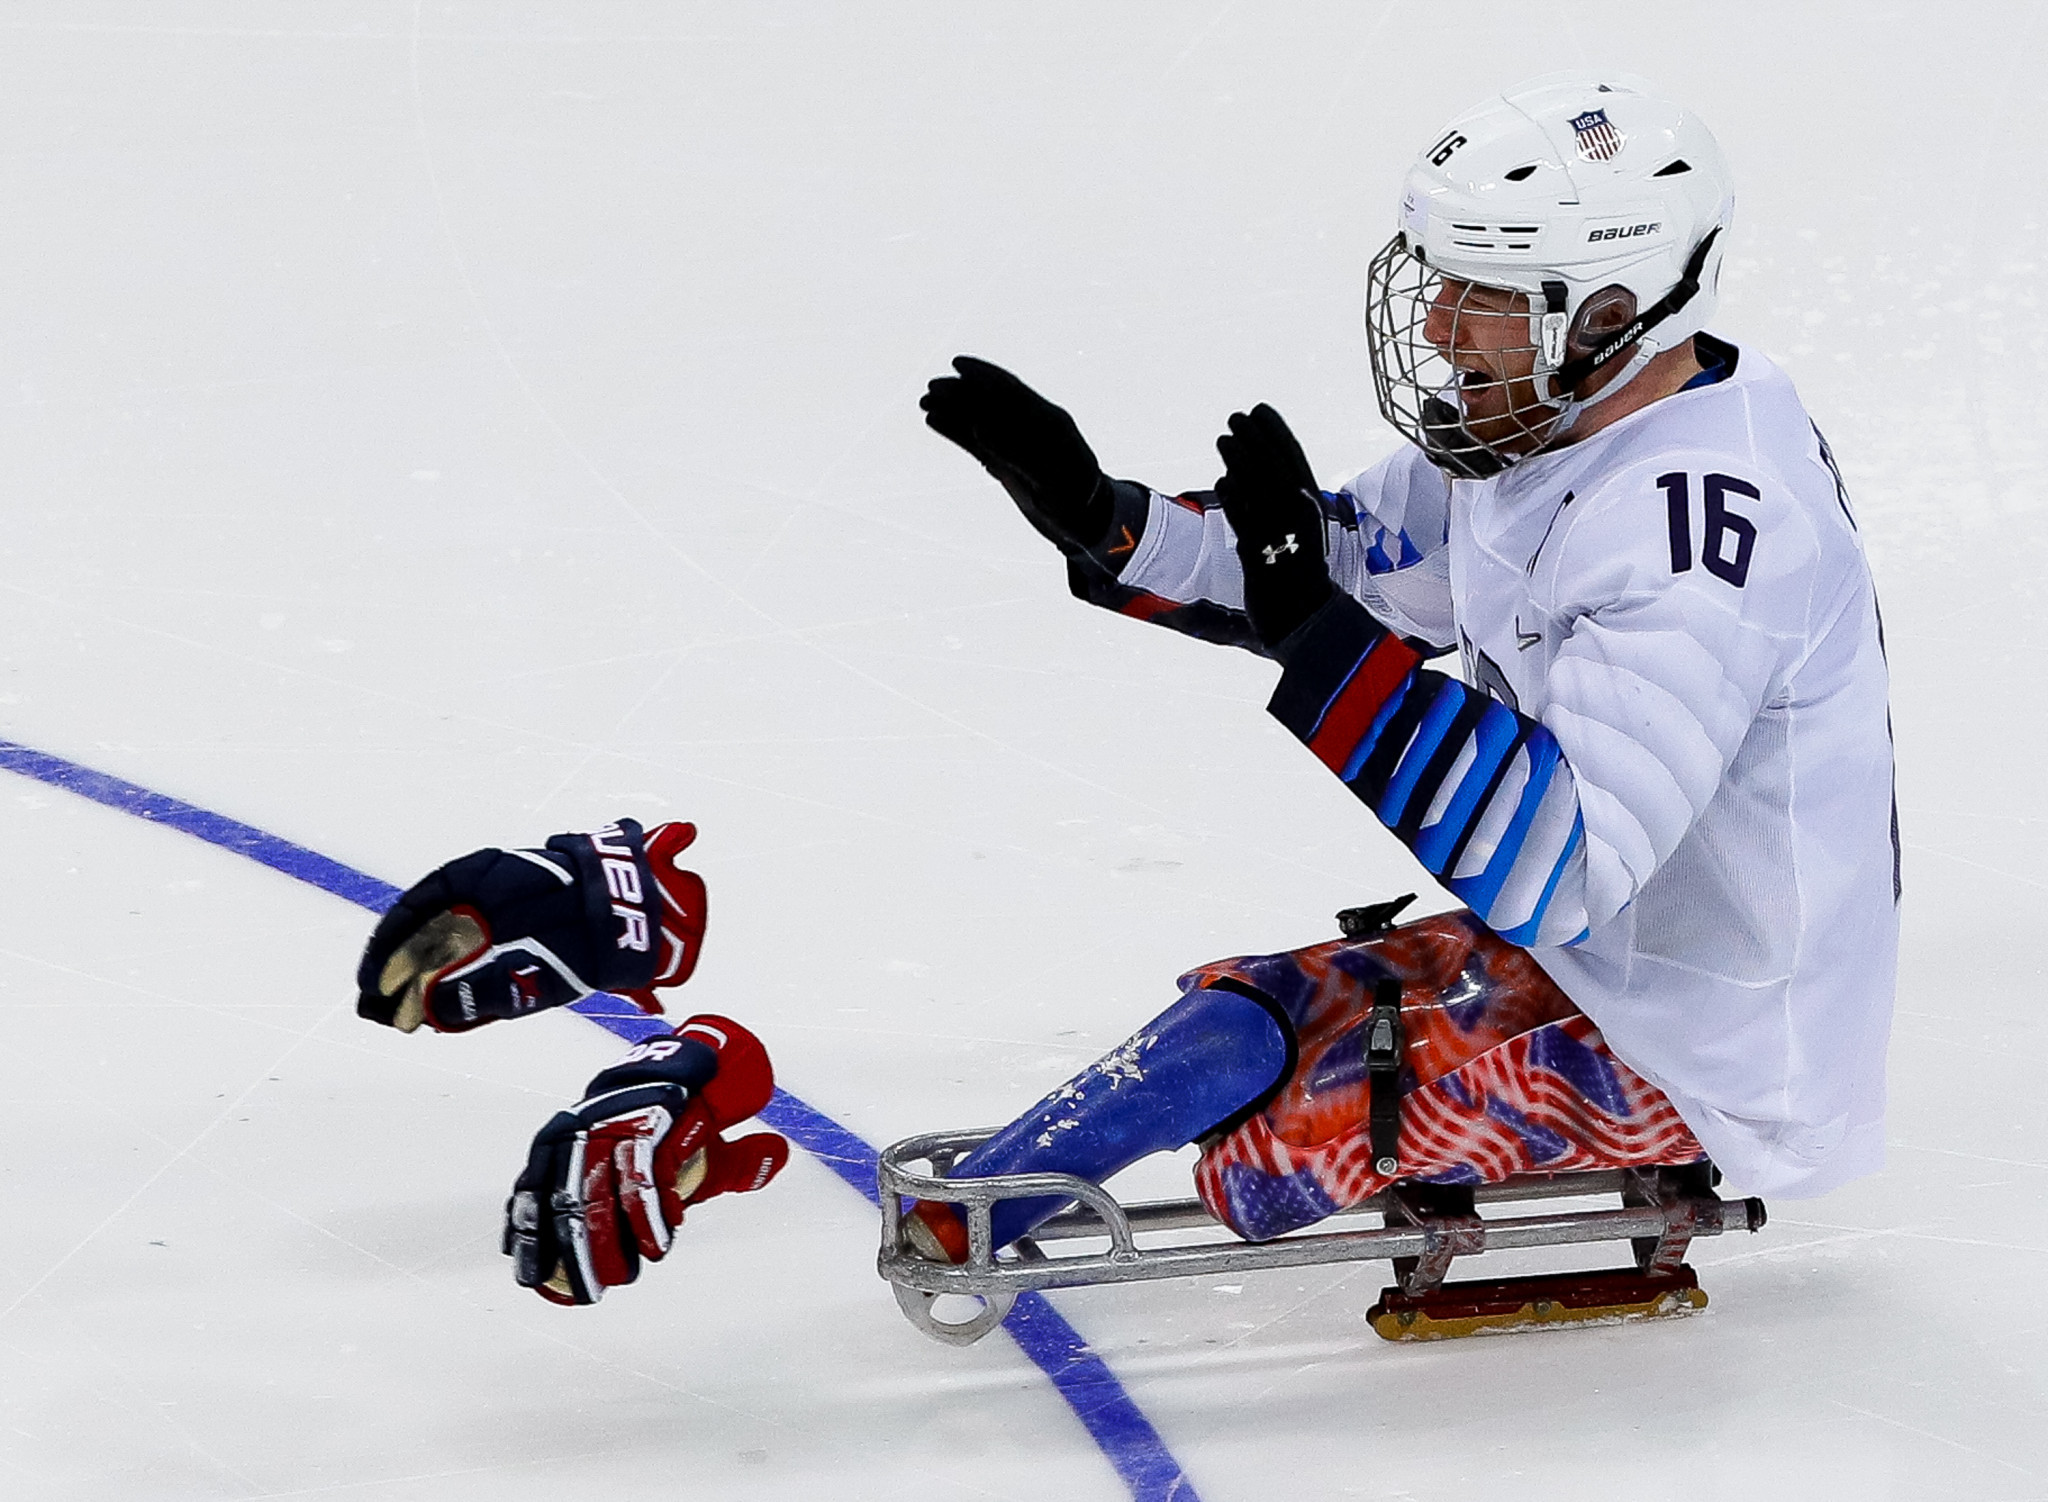 Declan Farmer of the United States celebrates scoring the goal which gave the US the gold medal in the ice hockey final at the 2018 Winter Paralympics ©Getty Images